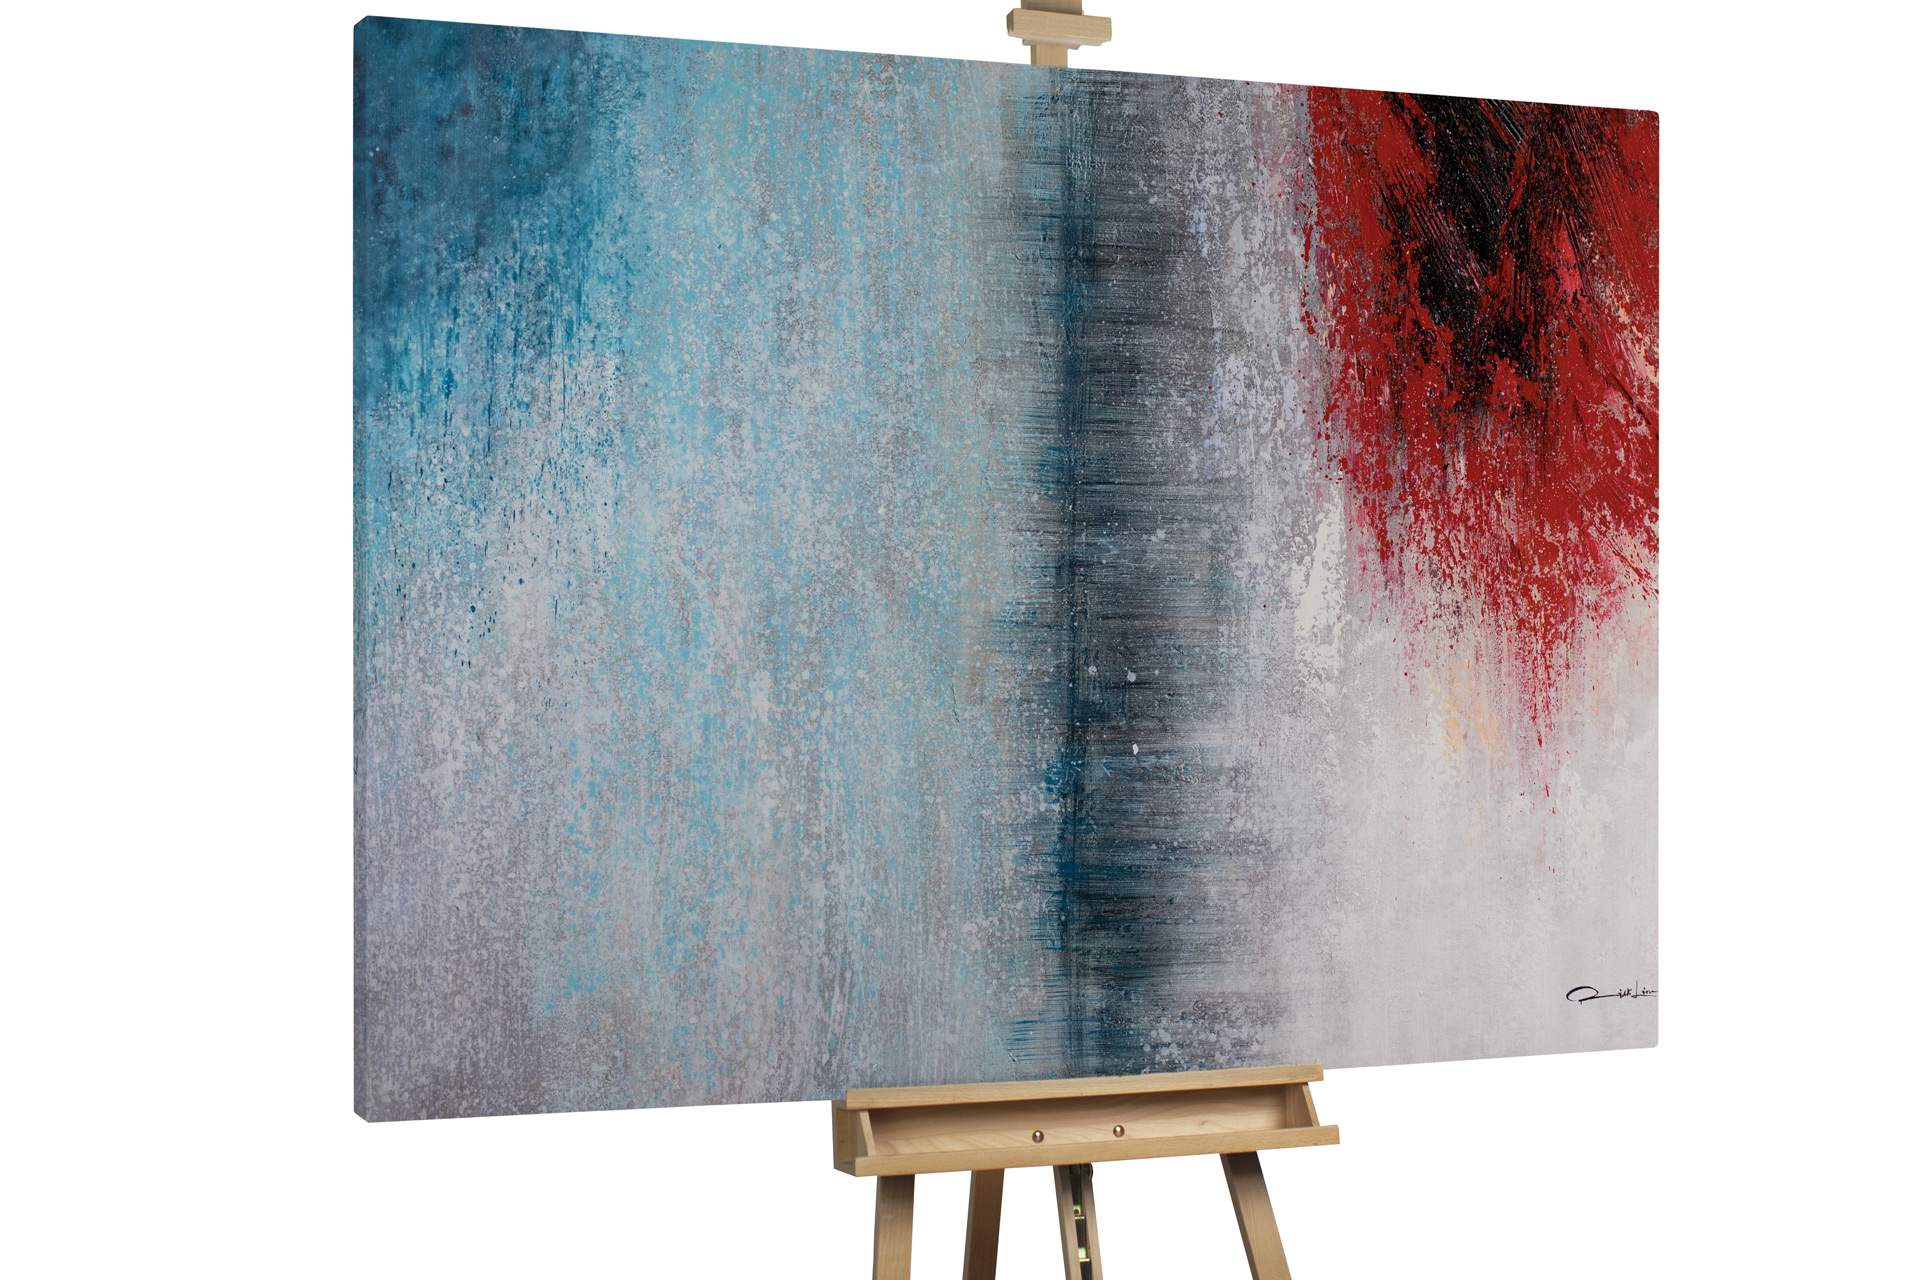 kl shading abstract blue red oil paintings oil pictures unique hand painted pieces modern art 0001 01